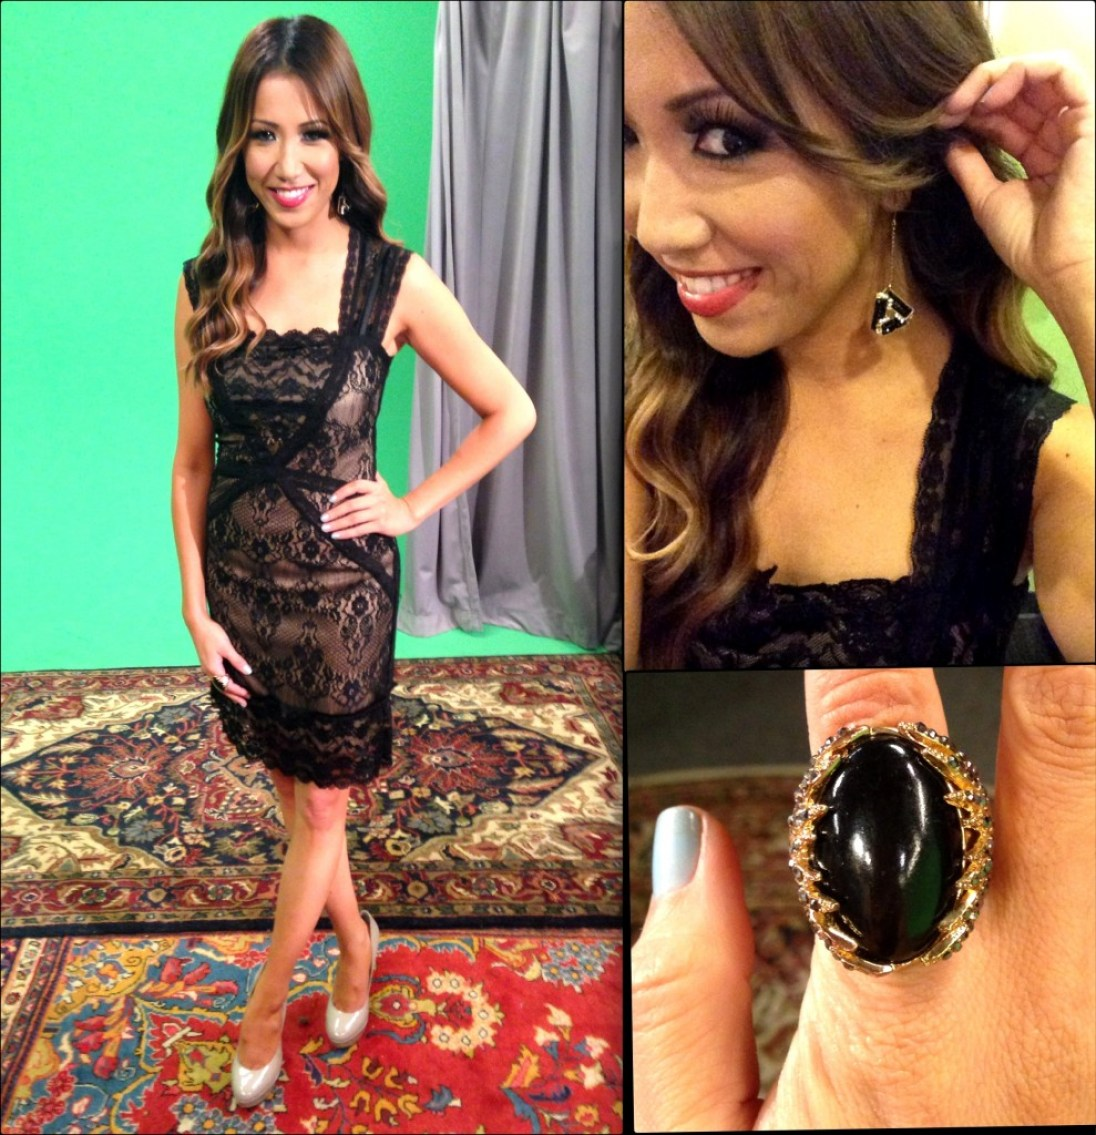 #MMSteez - Y! Sports Minute: Dress: Costa Blanca | Earrings: Jewelmint